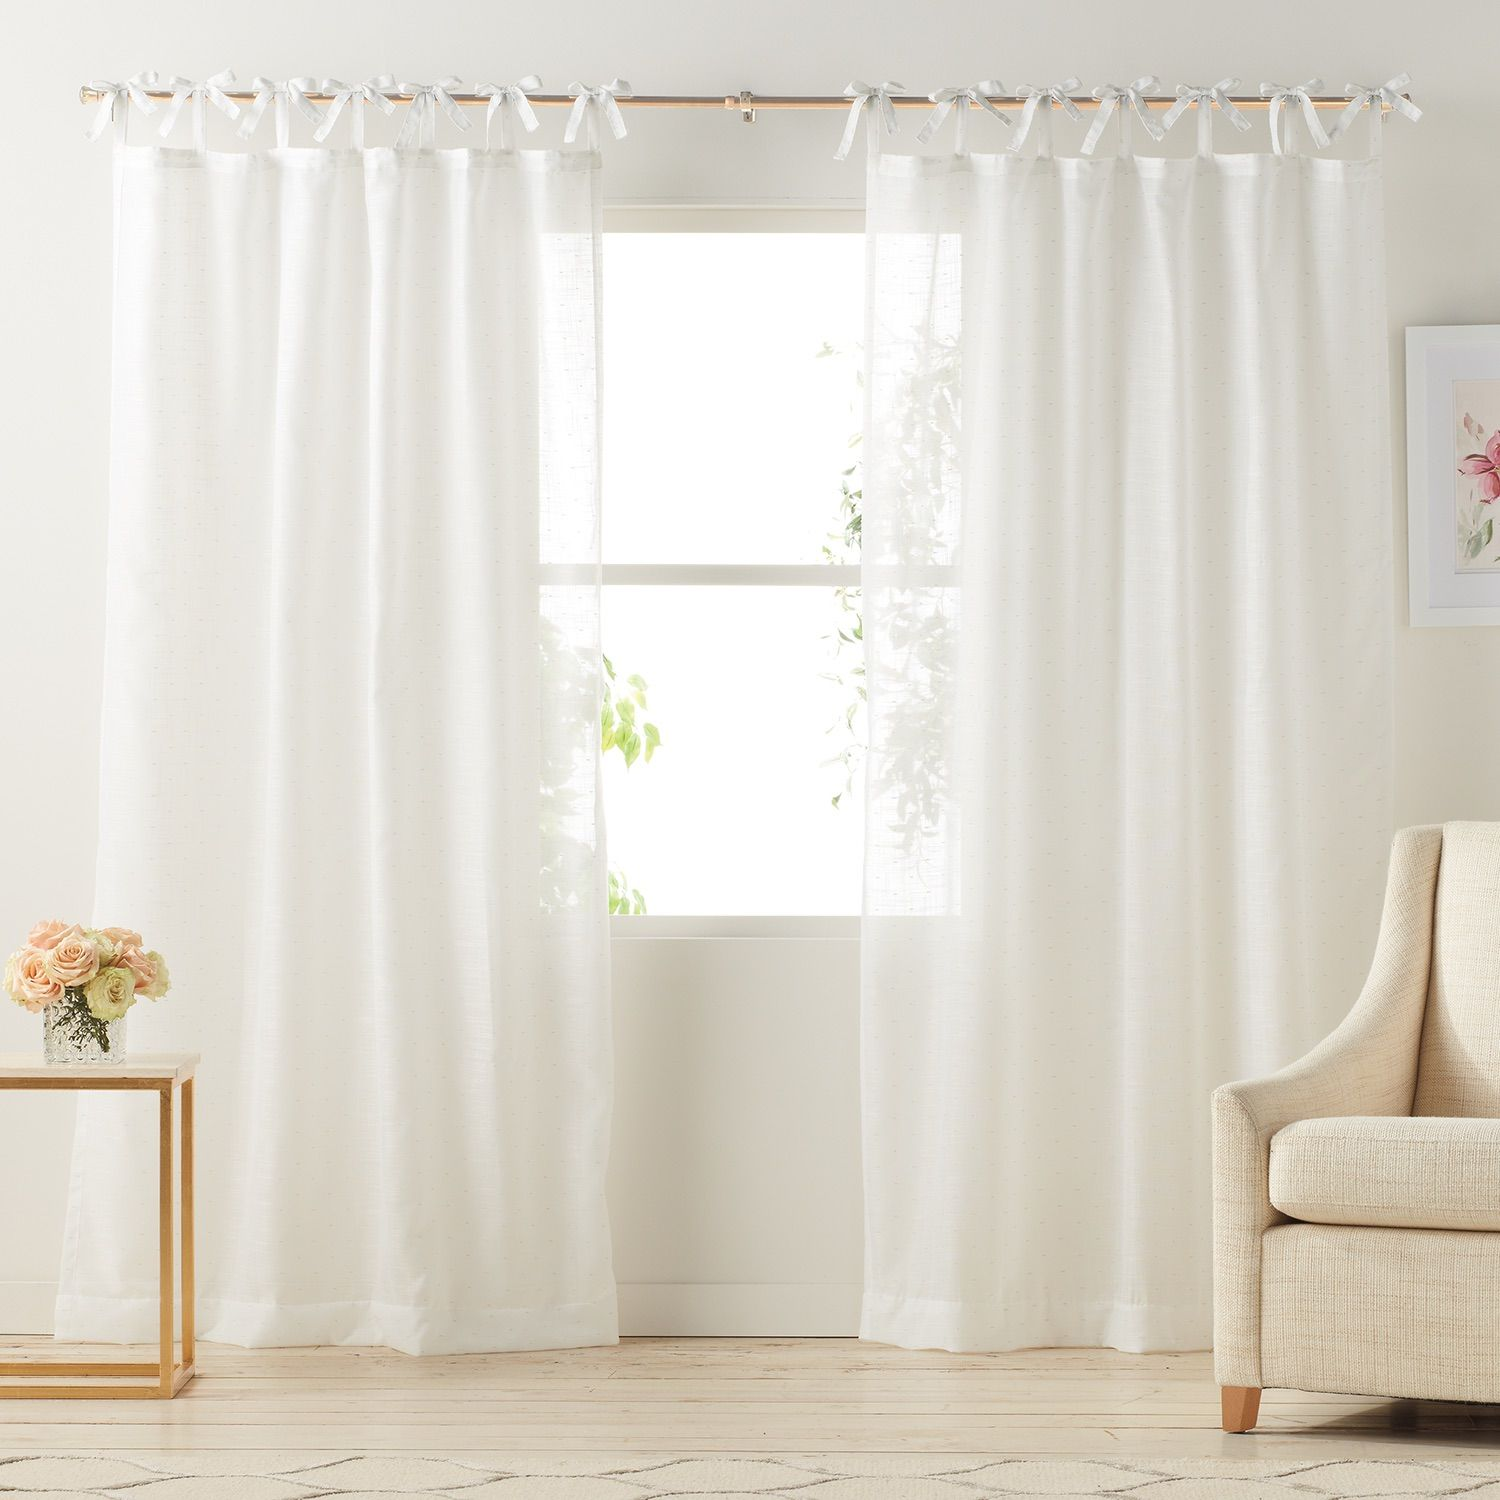 lc lauren conrad gabby sheer curtains | available at kohl